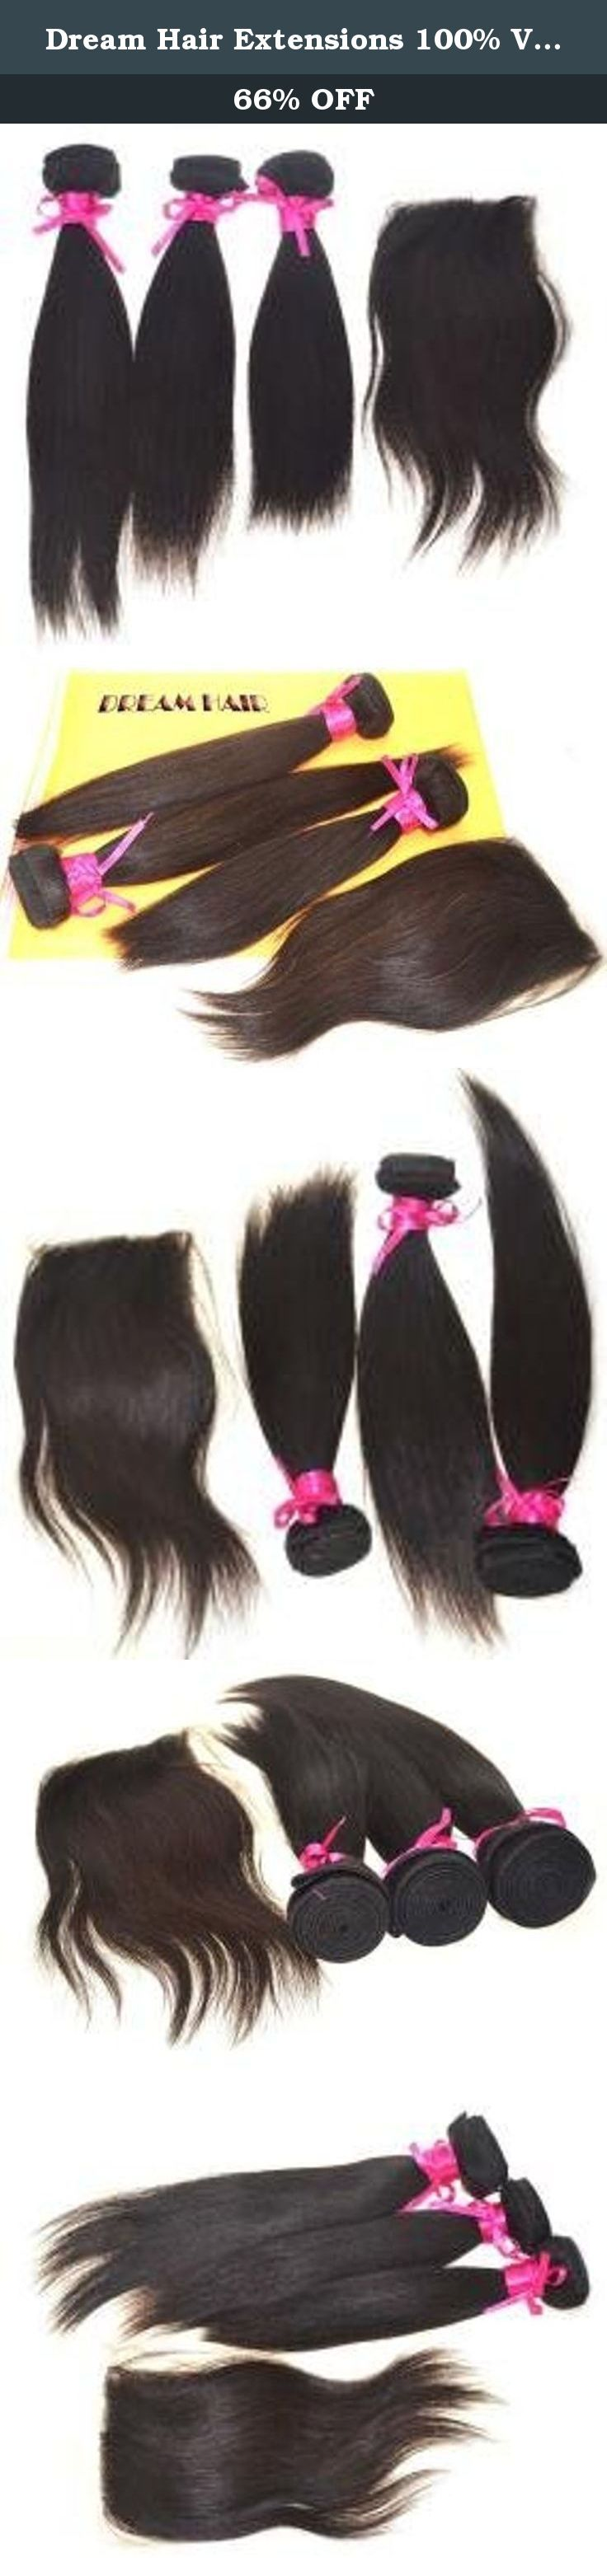 "Dream Hair Extensions 100% Virgin Peruvian Weave for Cheap Straight 3 Bundles 12""-30"" and 1 Lace Closure (4*4) Natural Color (1B) (18''20''22''+14''closure). We carry only 100% REAL human hair. It is then shipped to our own factory where it is assembled and packaged. This is how we are able to provide a product with the strictest quality standards for an unbeatable price. Our REAL human hair is completely natural and no chemical processes are used. We have our own team of hair collectors..."